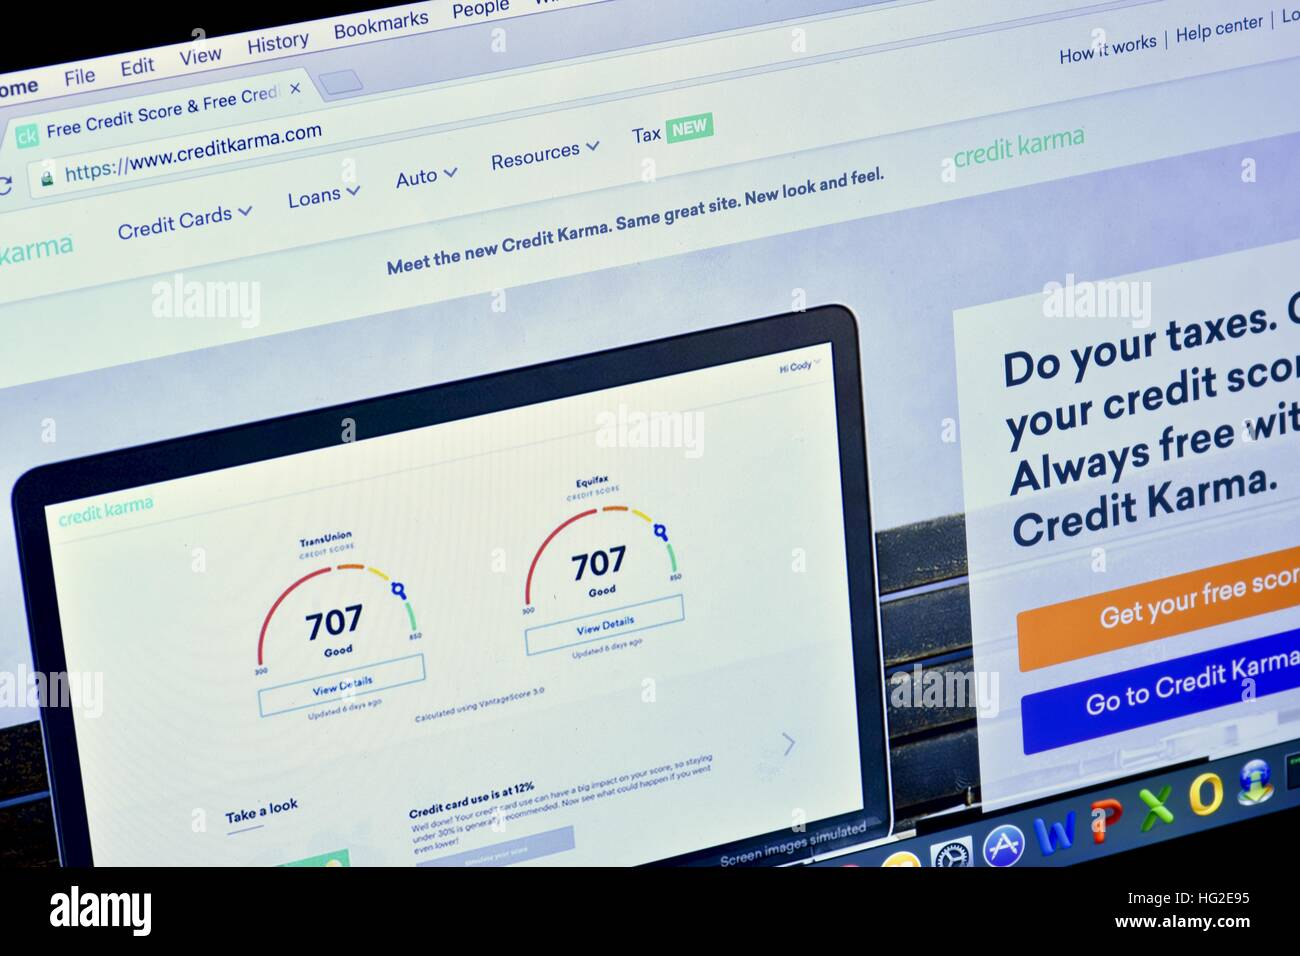 An Apple Macbook Pro displaying the Credit Karma web page Stock